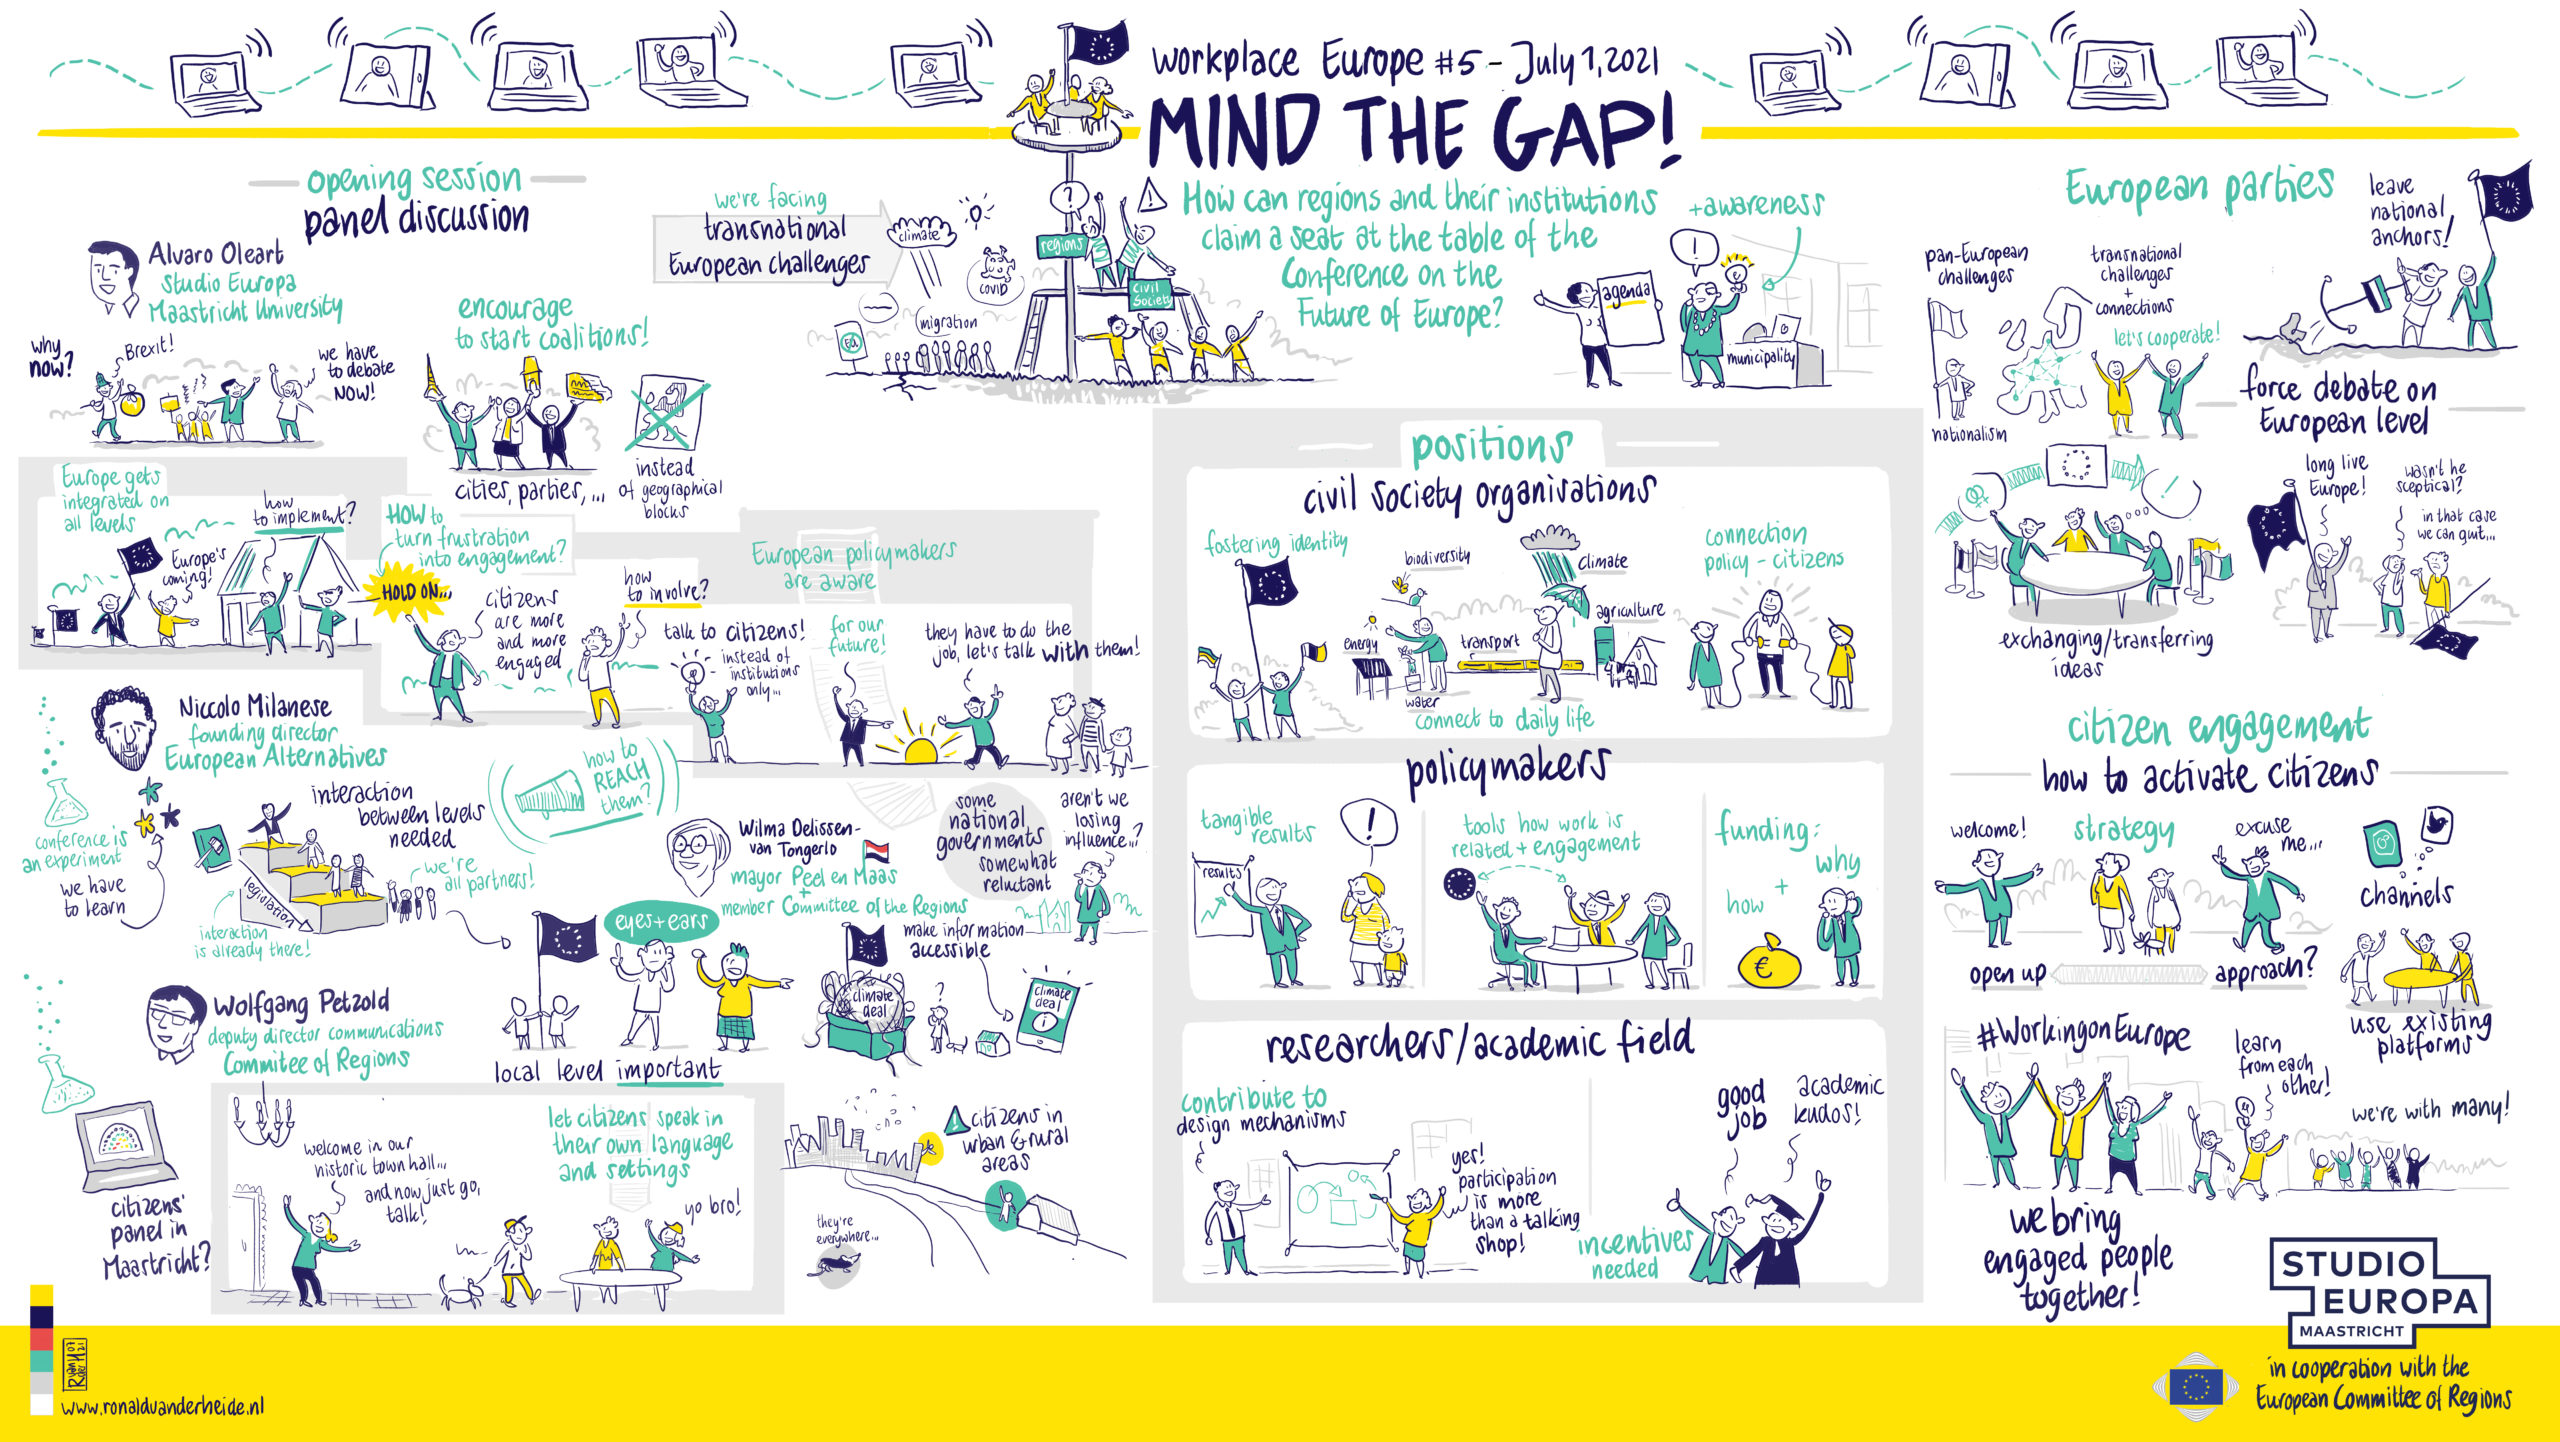 Workplace Europe: Mind the Gap!